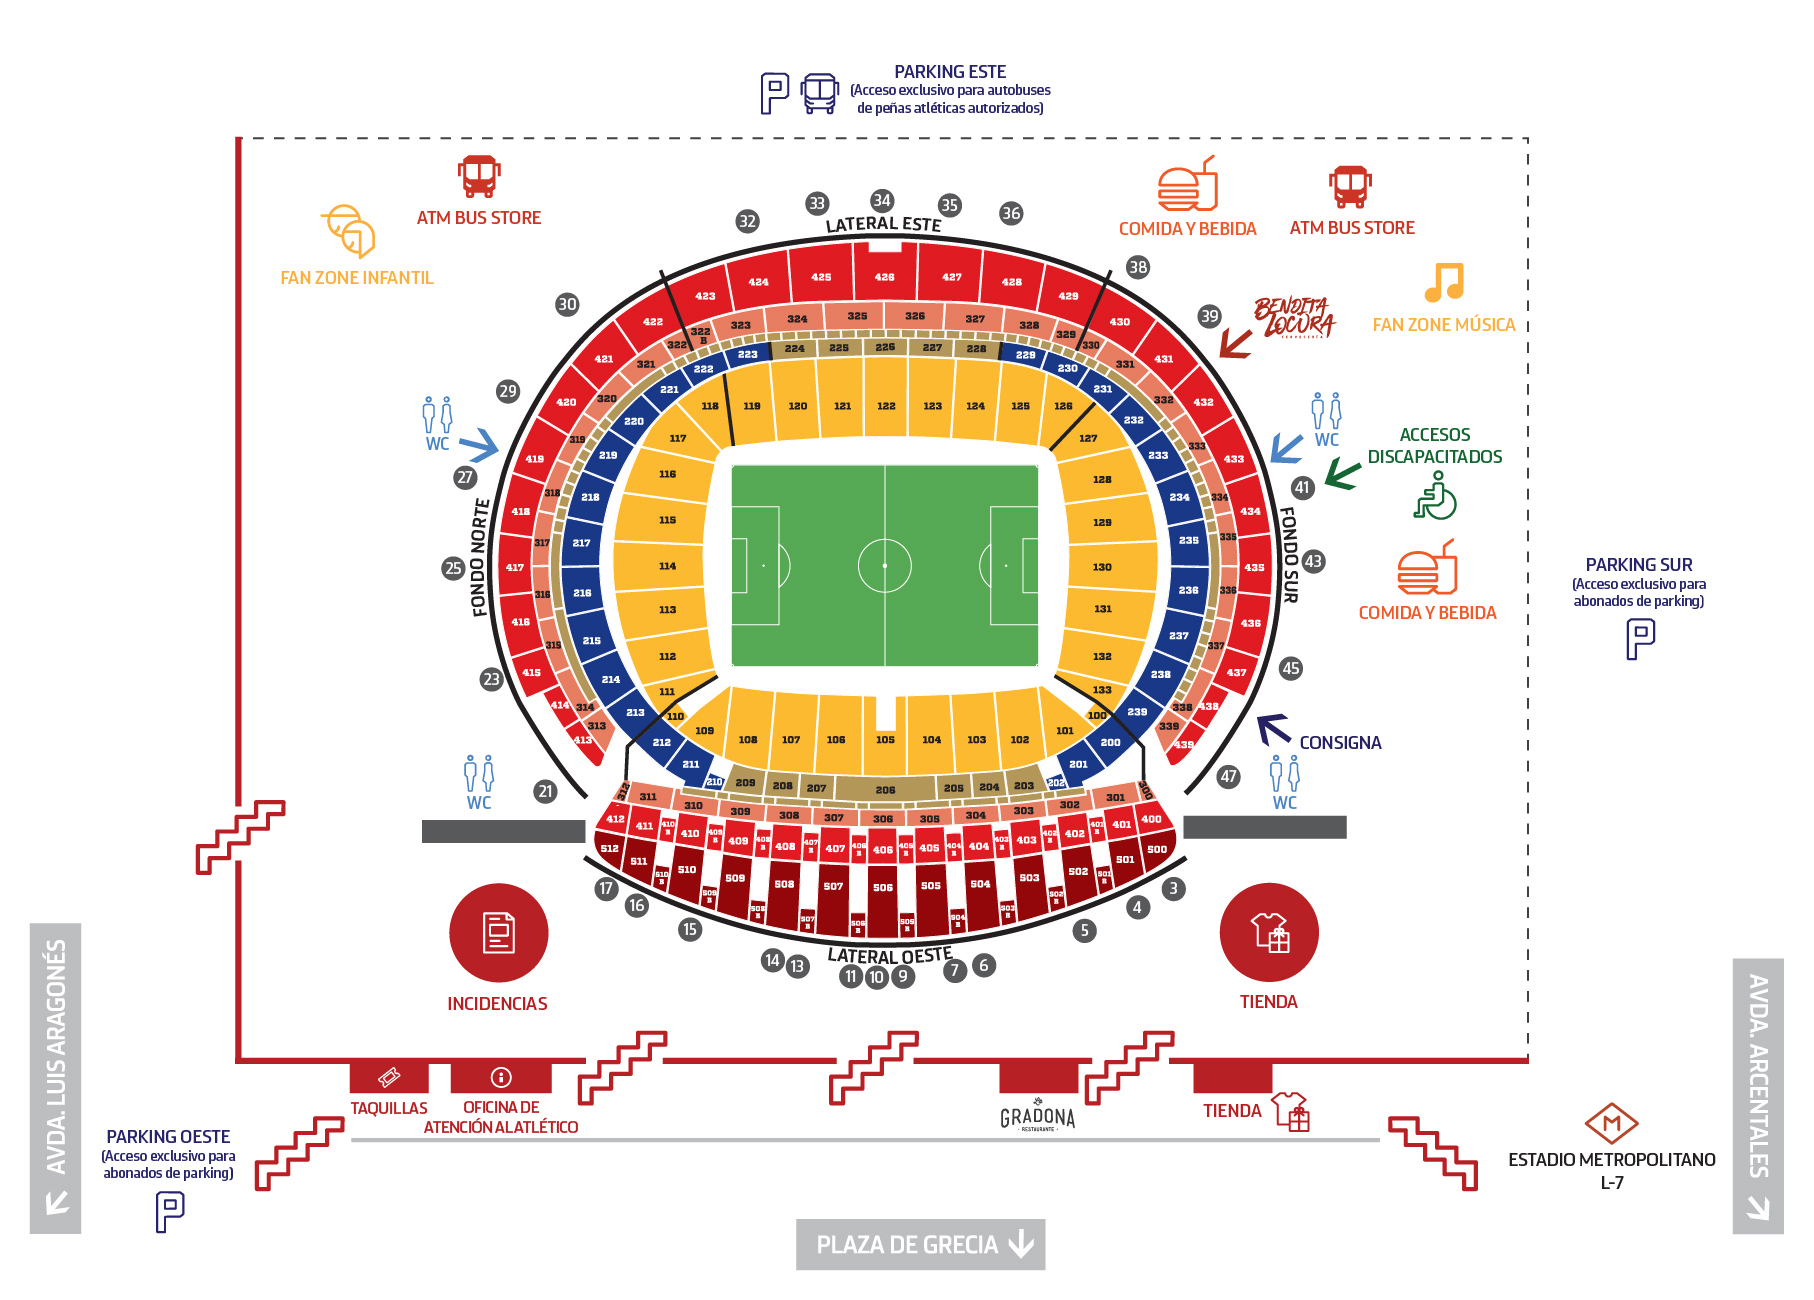 https://img-estaticos.atleticodemadrid.com//system/files/47187/large/FicythM42R_mapa2.jpg?1535107004